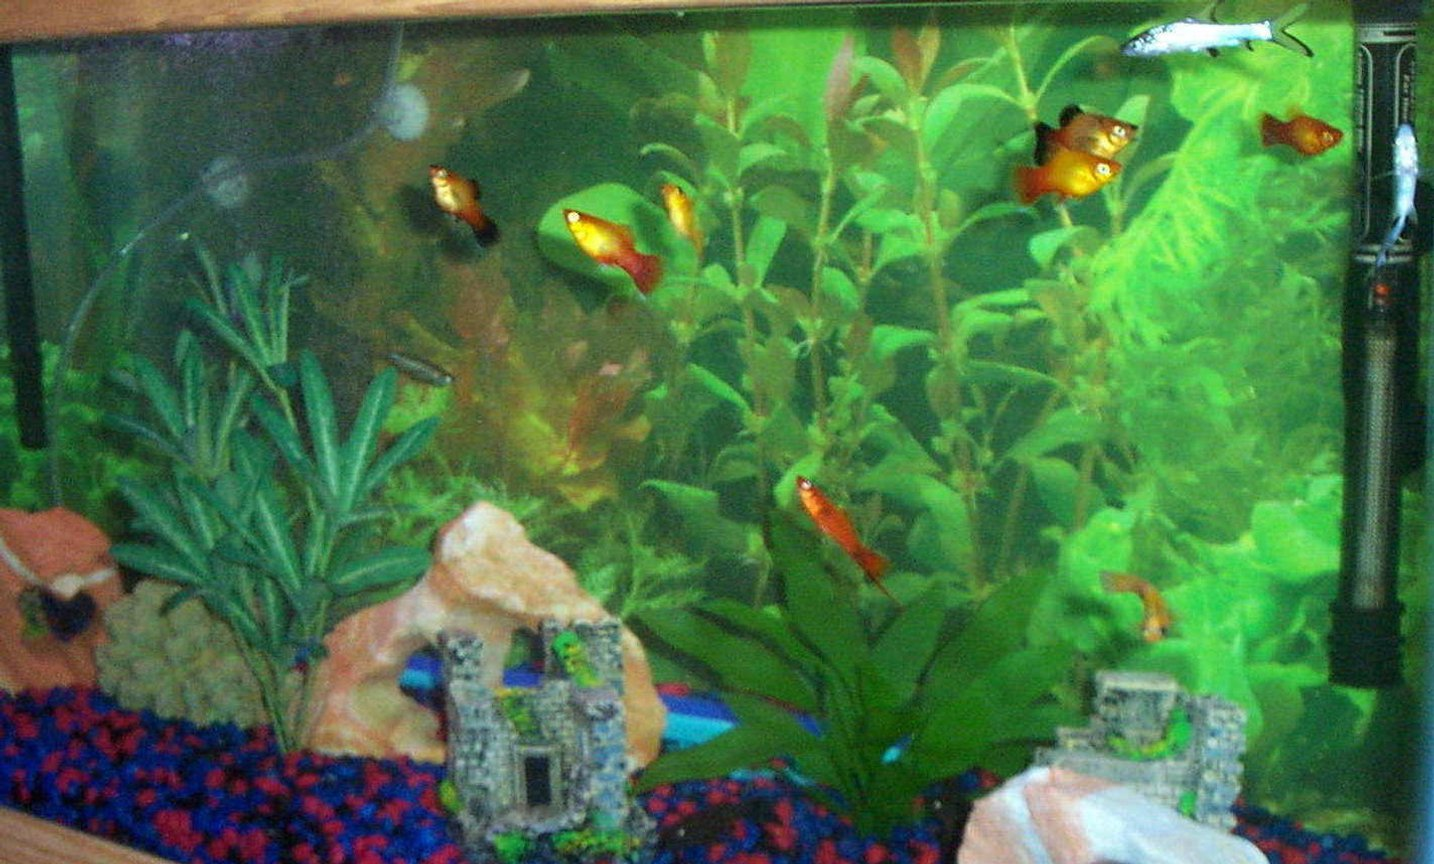 30 gallons freshwater fish tank (mostly fish and non-living decorations) - Community of primarily live-bearers